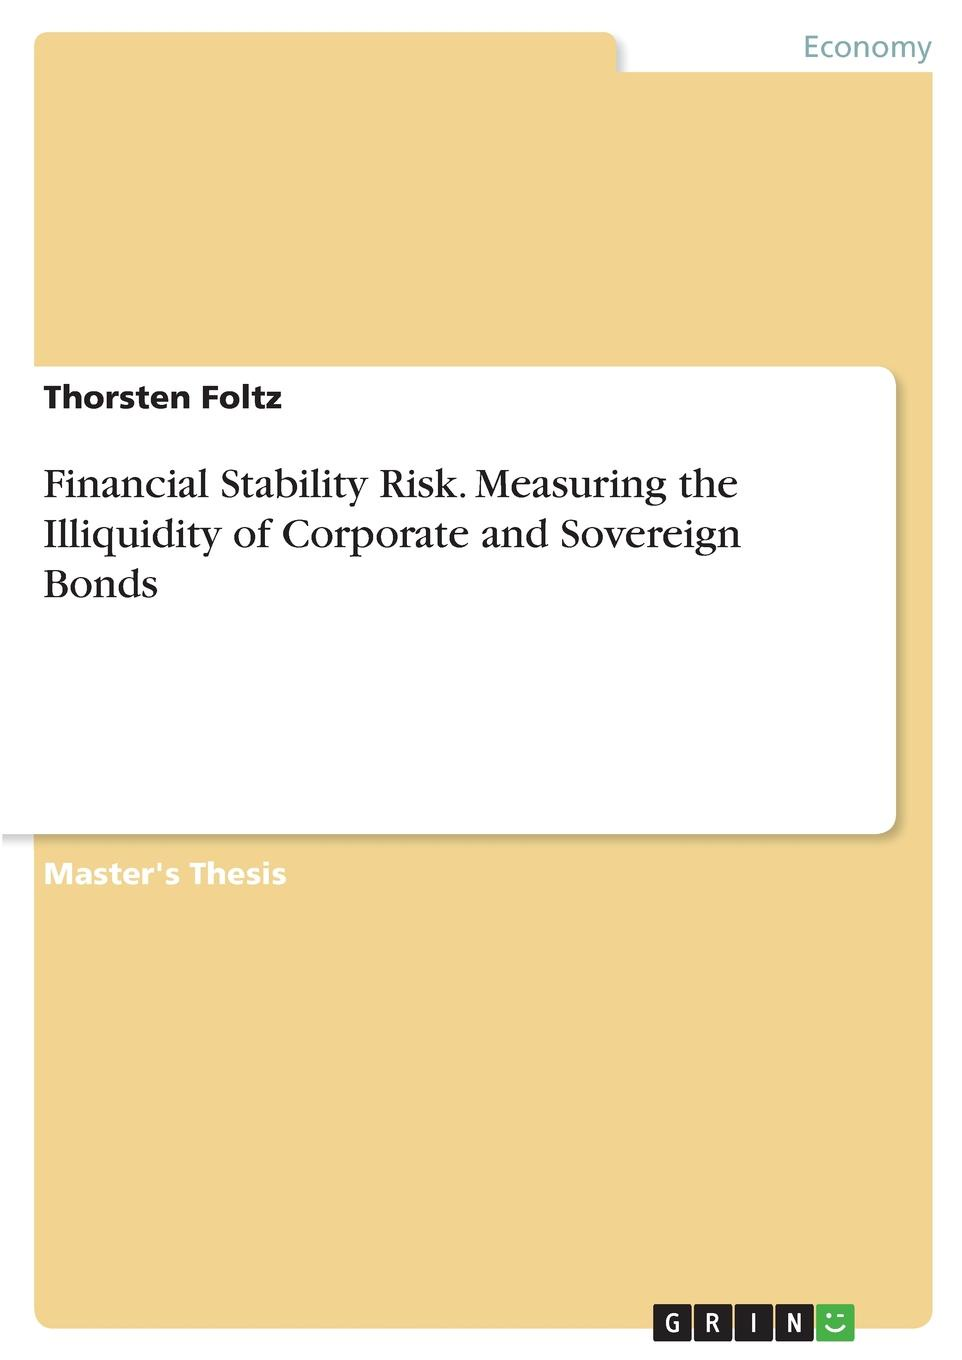 Thorsten Foltz Financial Stability Risk. Measuring the Illiquidity of Corporate and Sovereign Bonds